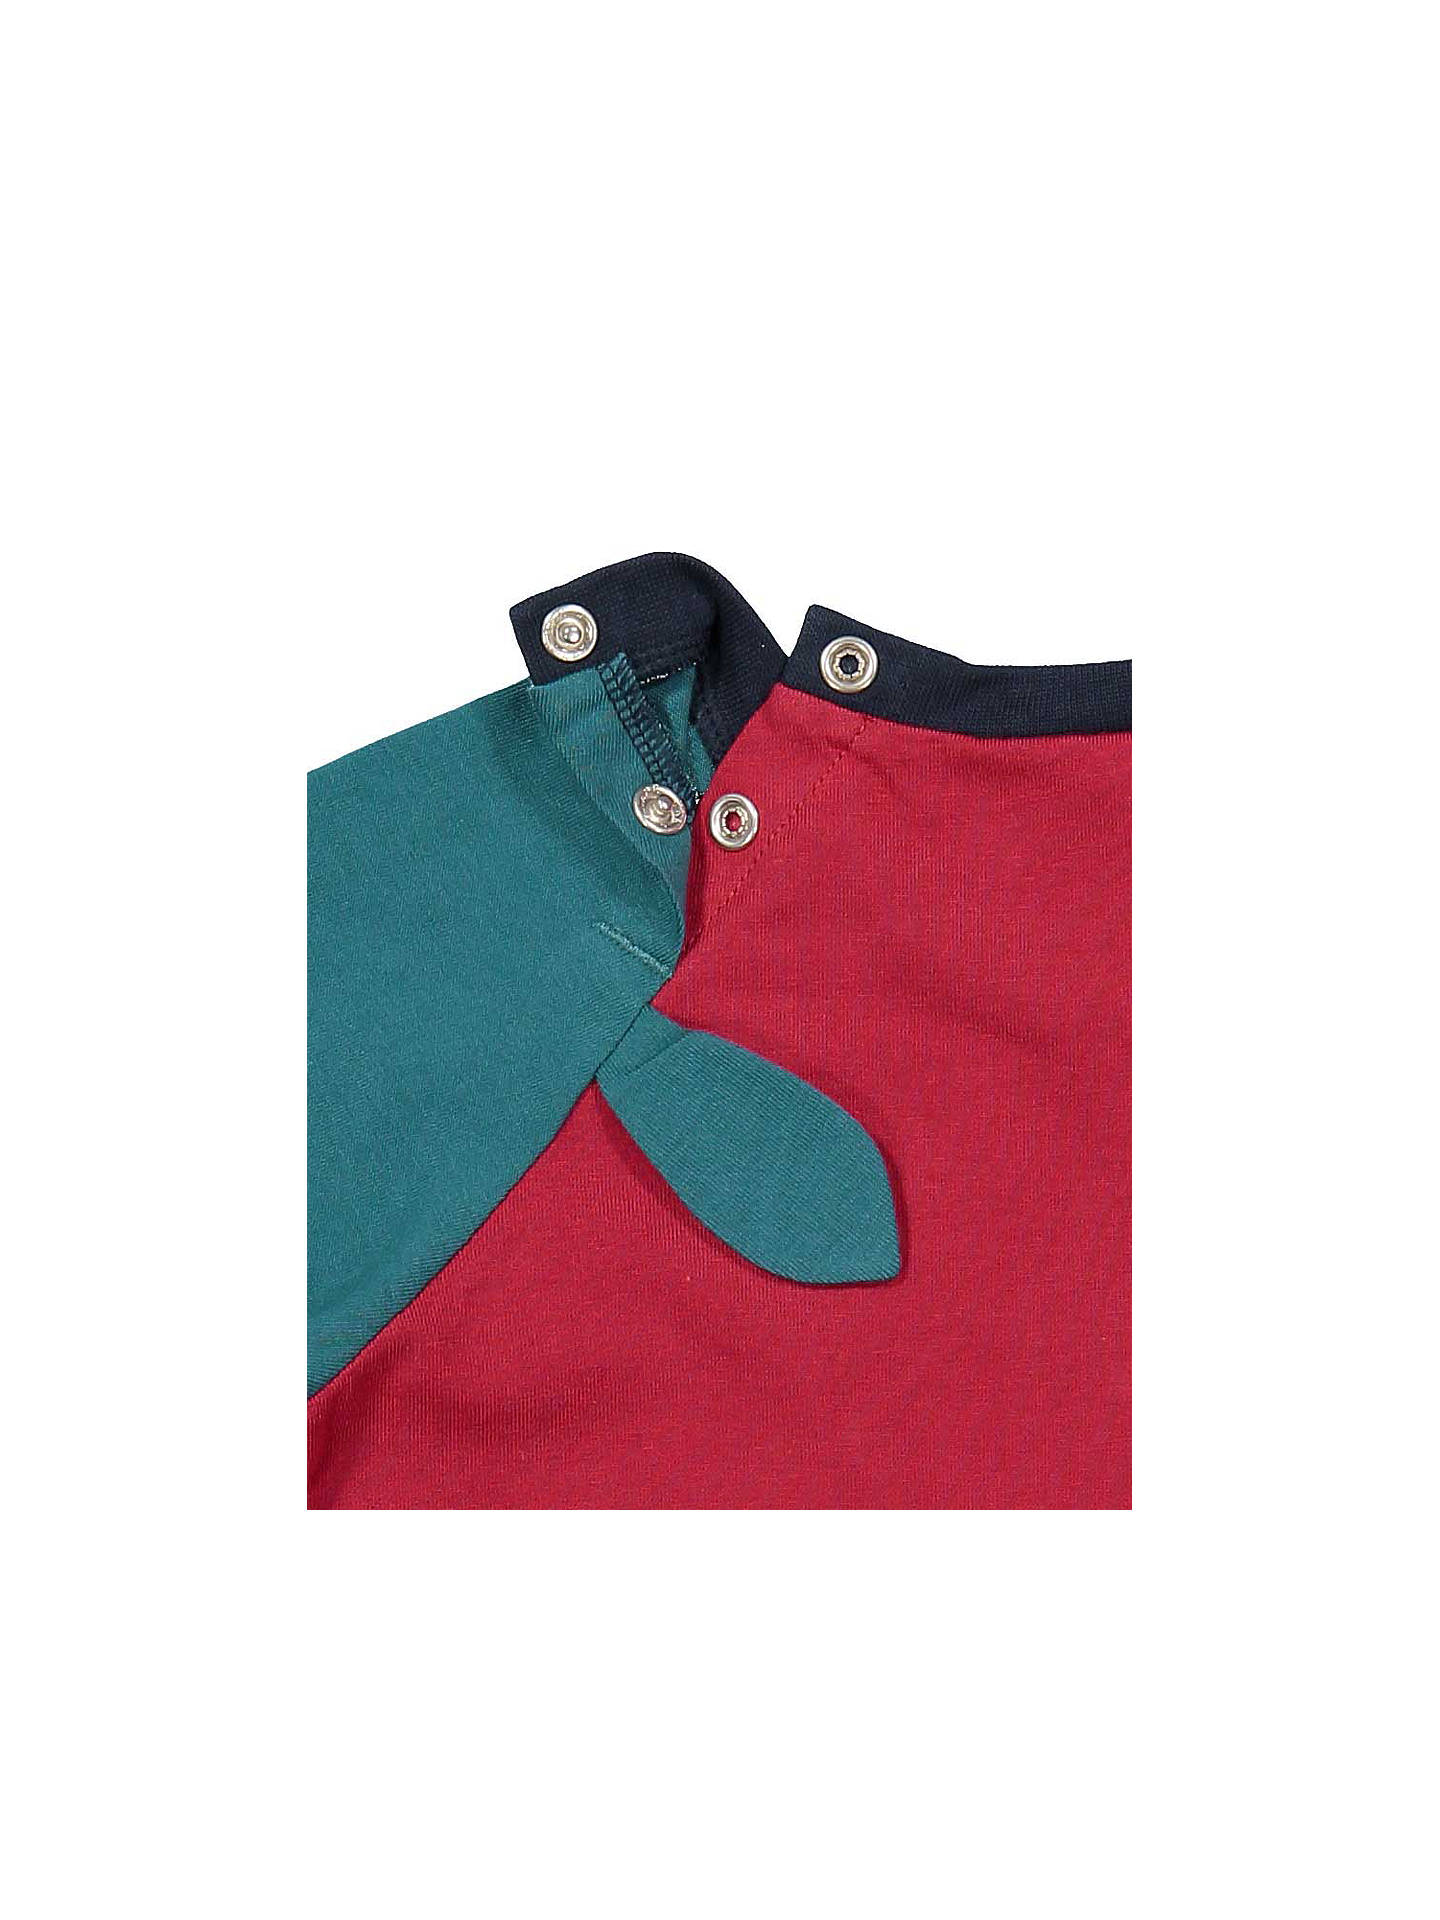 Buy Polarn O. Pyret Baby Dragon Top, Red, 6-9 months Online at johnlewis.com